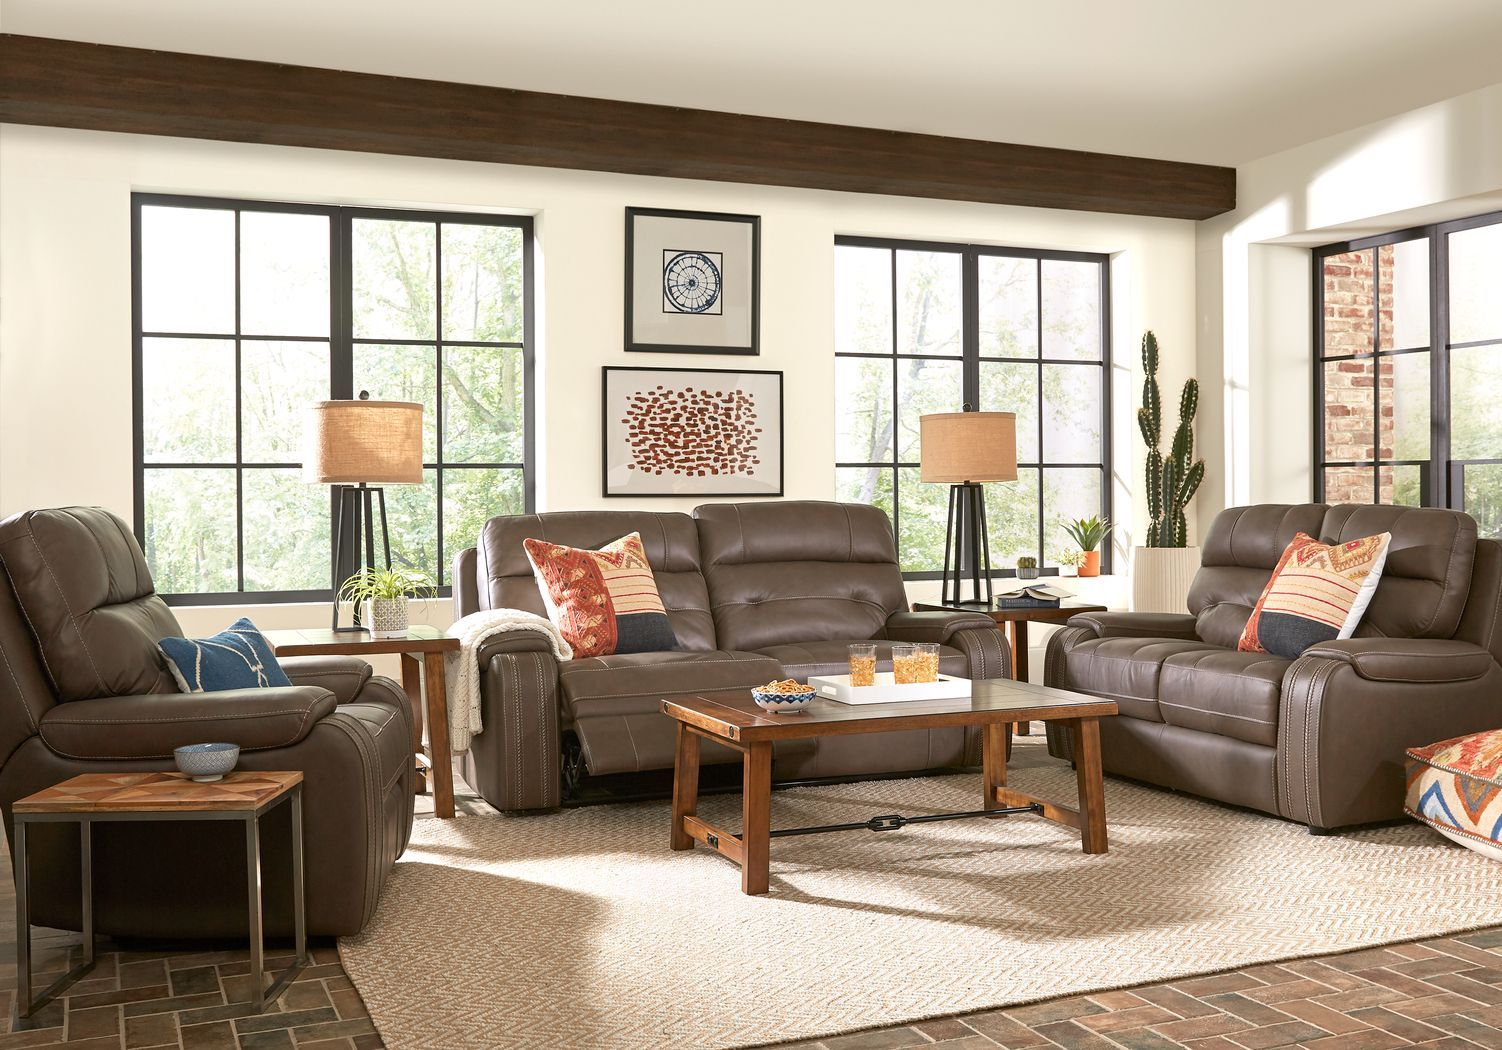 Italo Brown Leather 2 Pc Living Room With Reclining Sofa Living Room Leather Living Room Sets Reclining Sofa